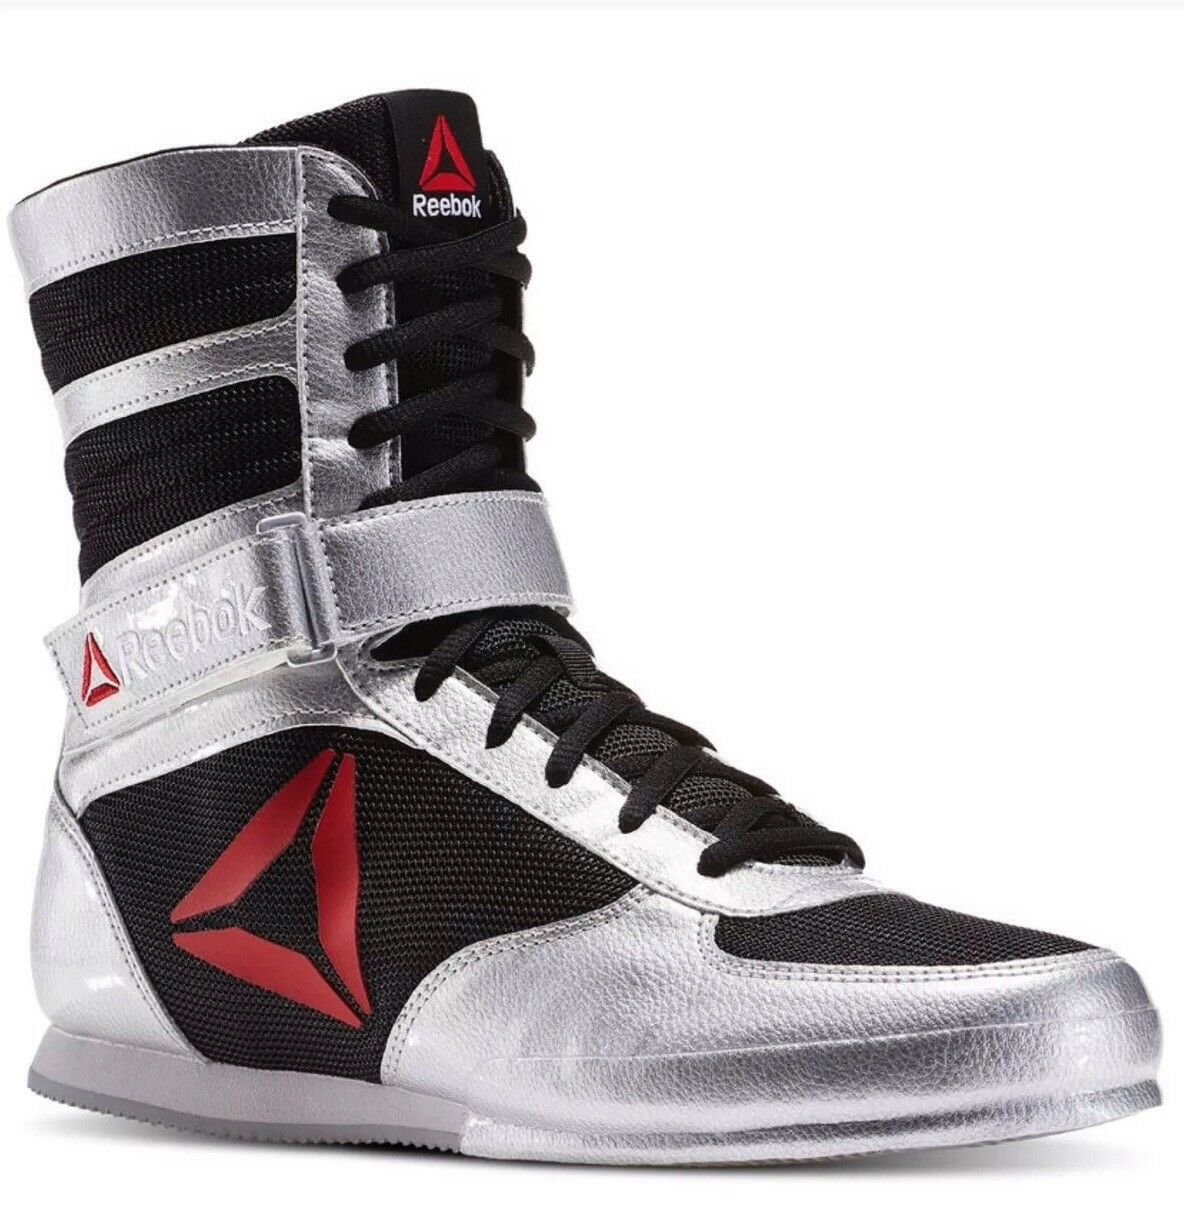 Reebok boxing boots pat bd1346 mens shoes silver black white